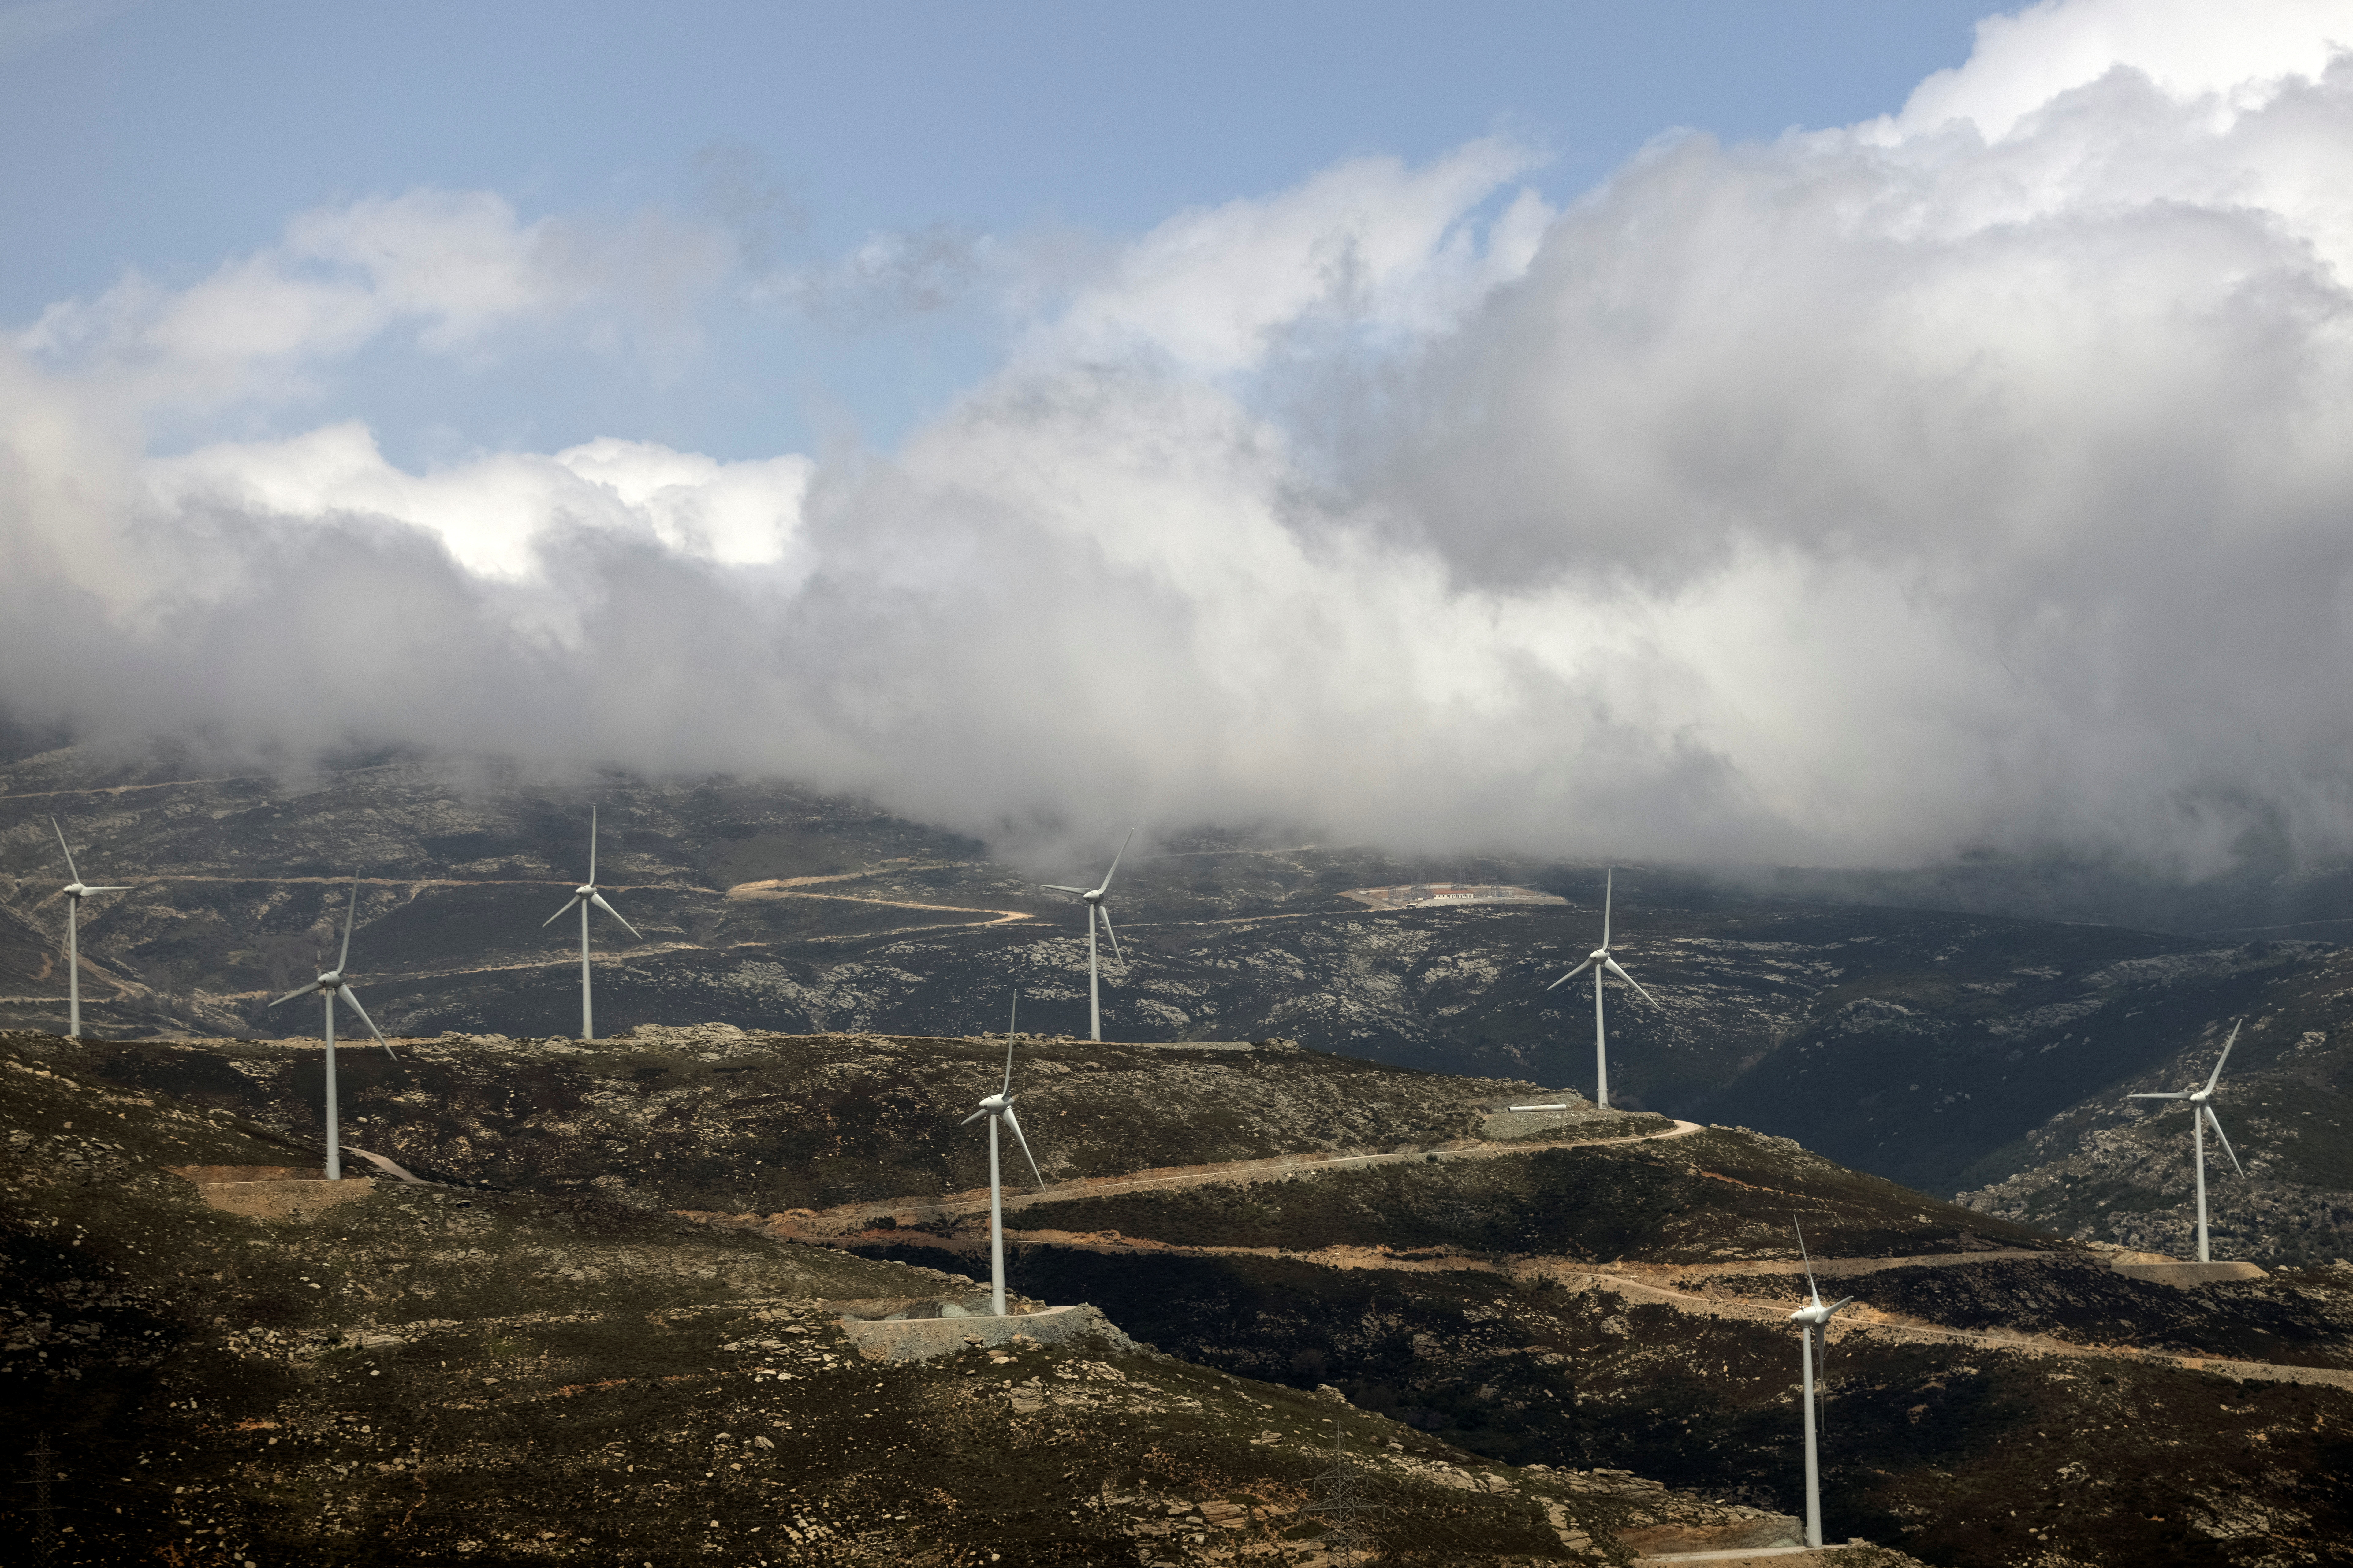 Wind turbines are seen on a mountain near the town of Karystos, on the island of Evia, Greece, April 16, 2021. REUTERS/Alkis Konstantinidis